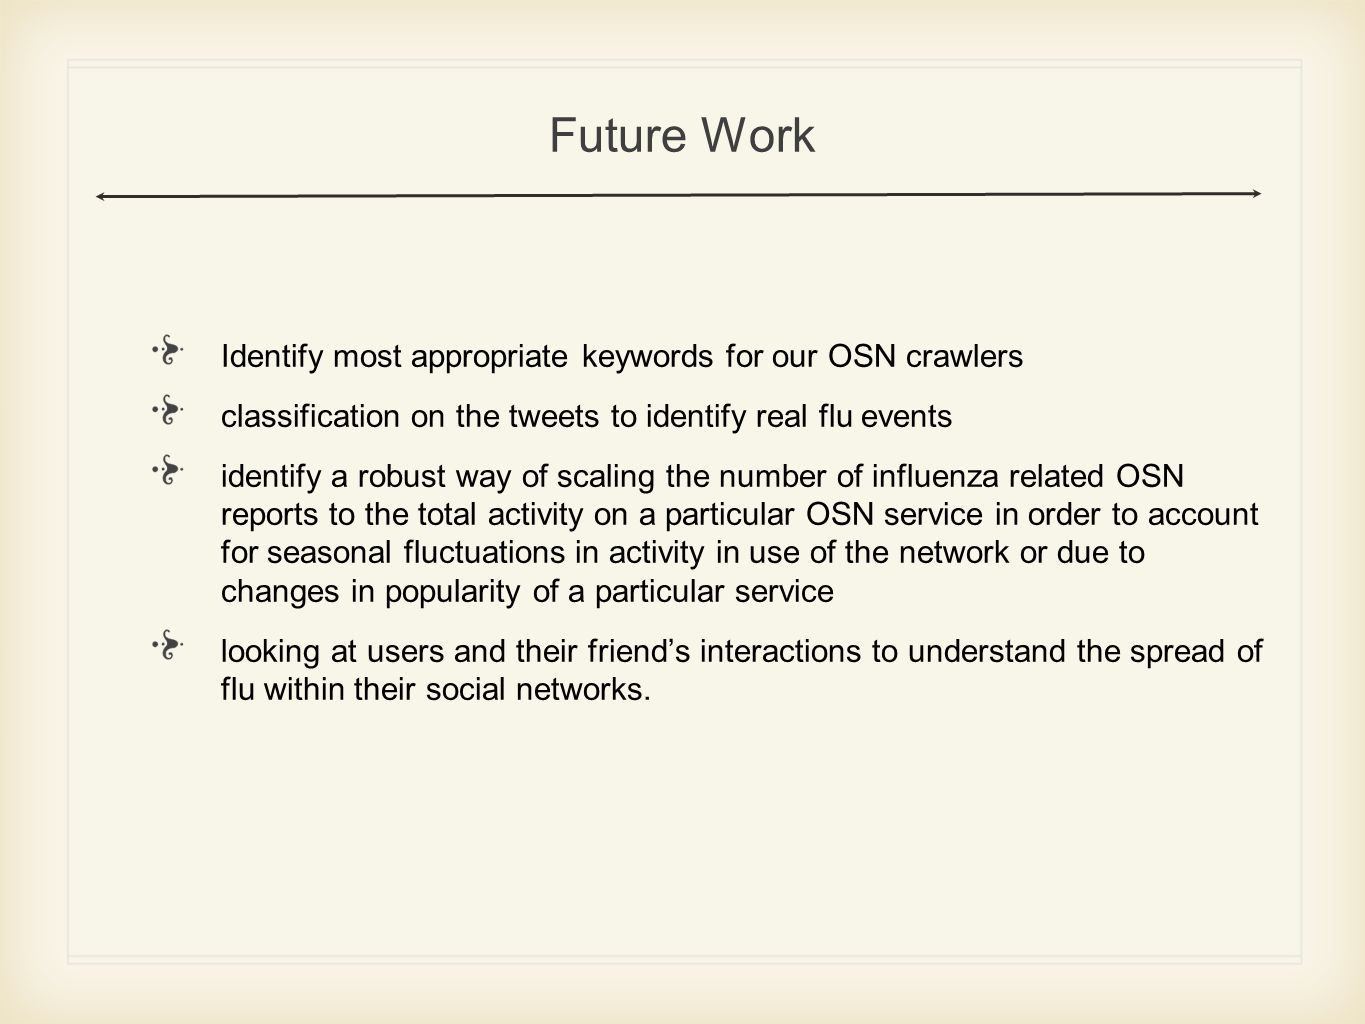 Future Work Identify most appropriate keywords for our OSN crawlers classification on the tweets to identify real flu events identify a robust way of scaling the number of influenza related OSN reports to the total activity on a particular OSN service in order to account for seasonal fluctuations in activity in use of the network or due to changes in popularity of a particular service looking at users and their friends interactions to understand the spread of flu within their social networks.